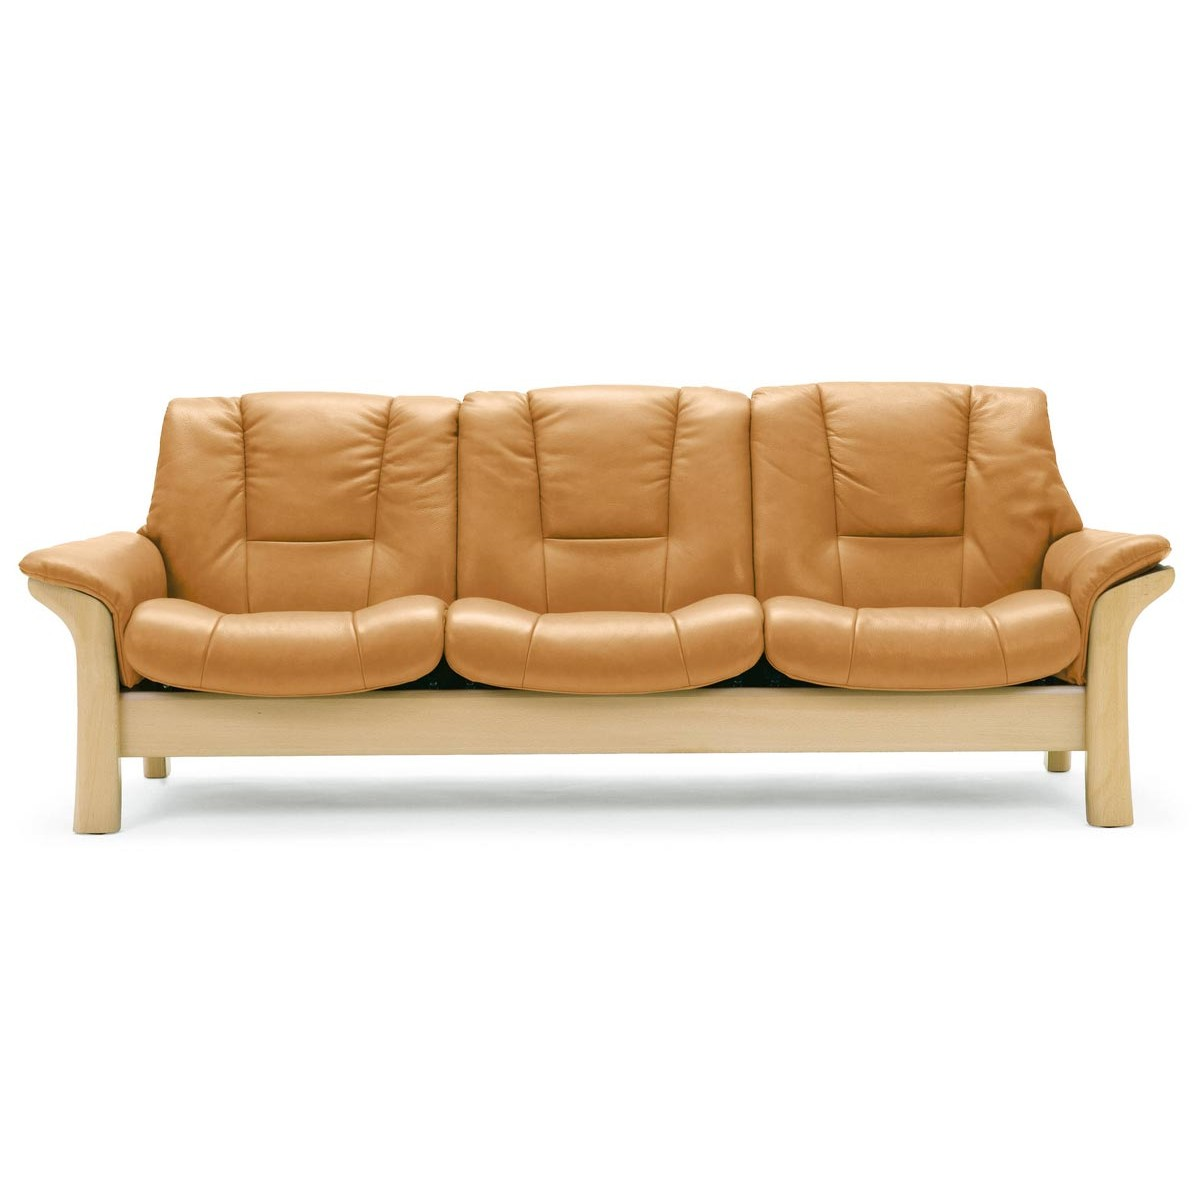 Stressless Buckingham Low Back Sofa